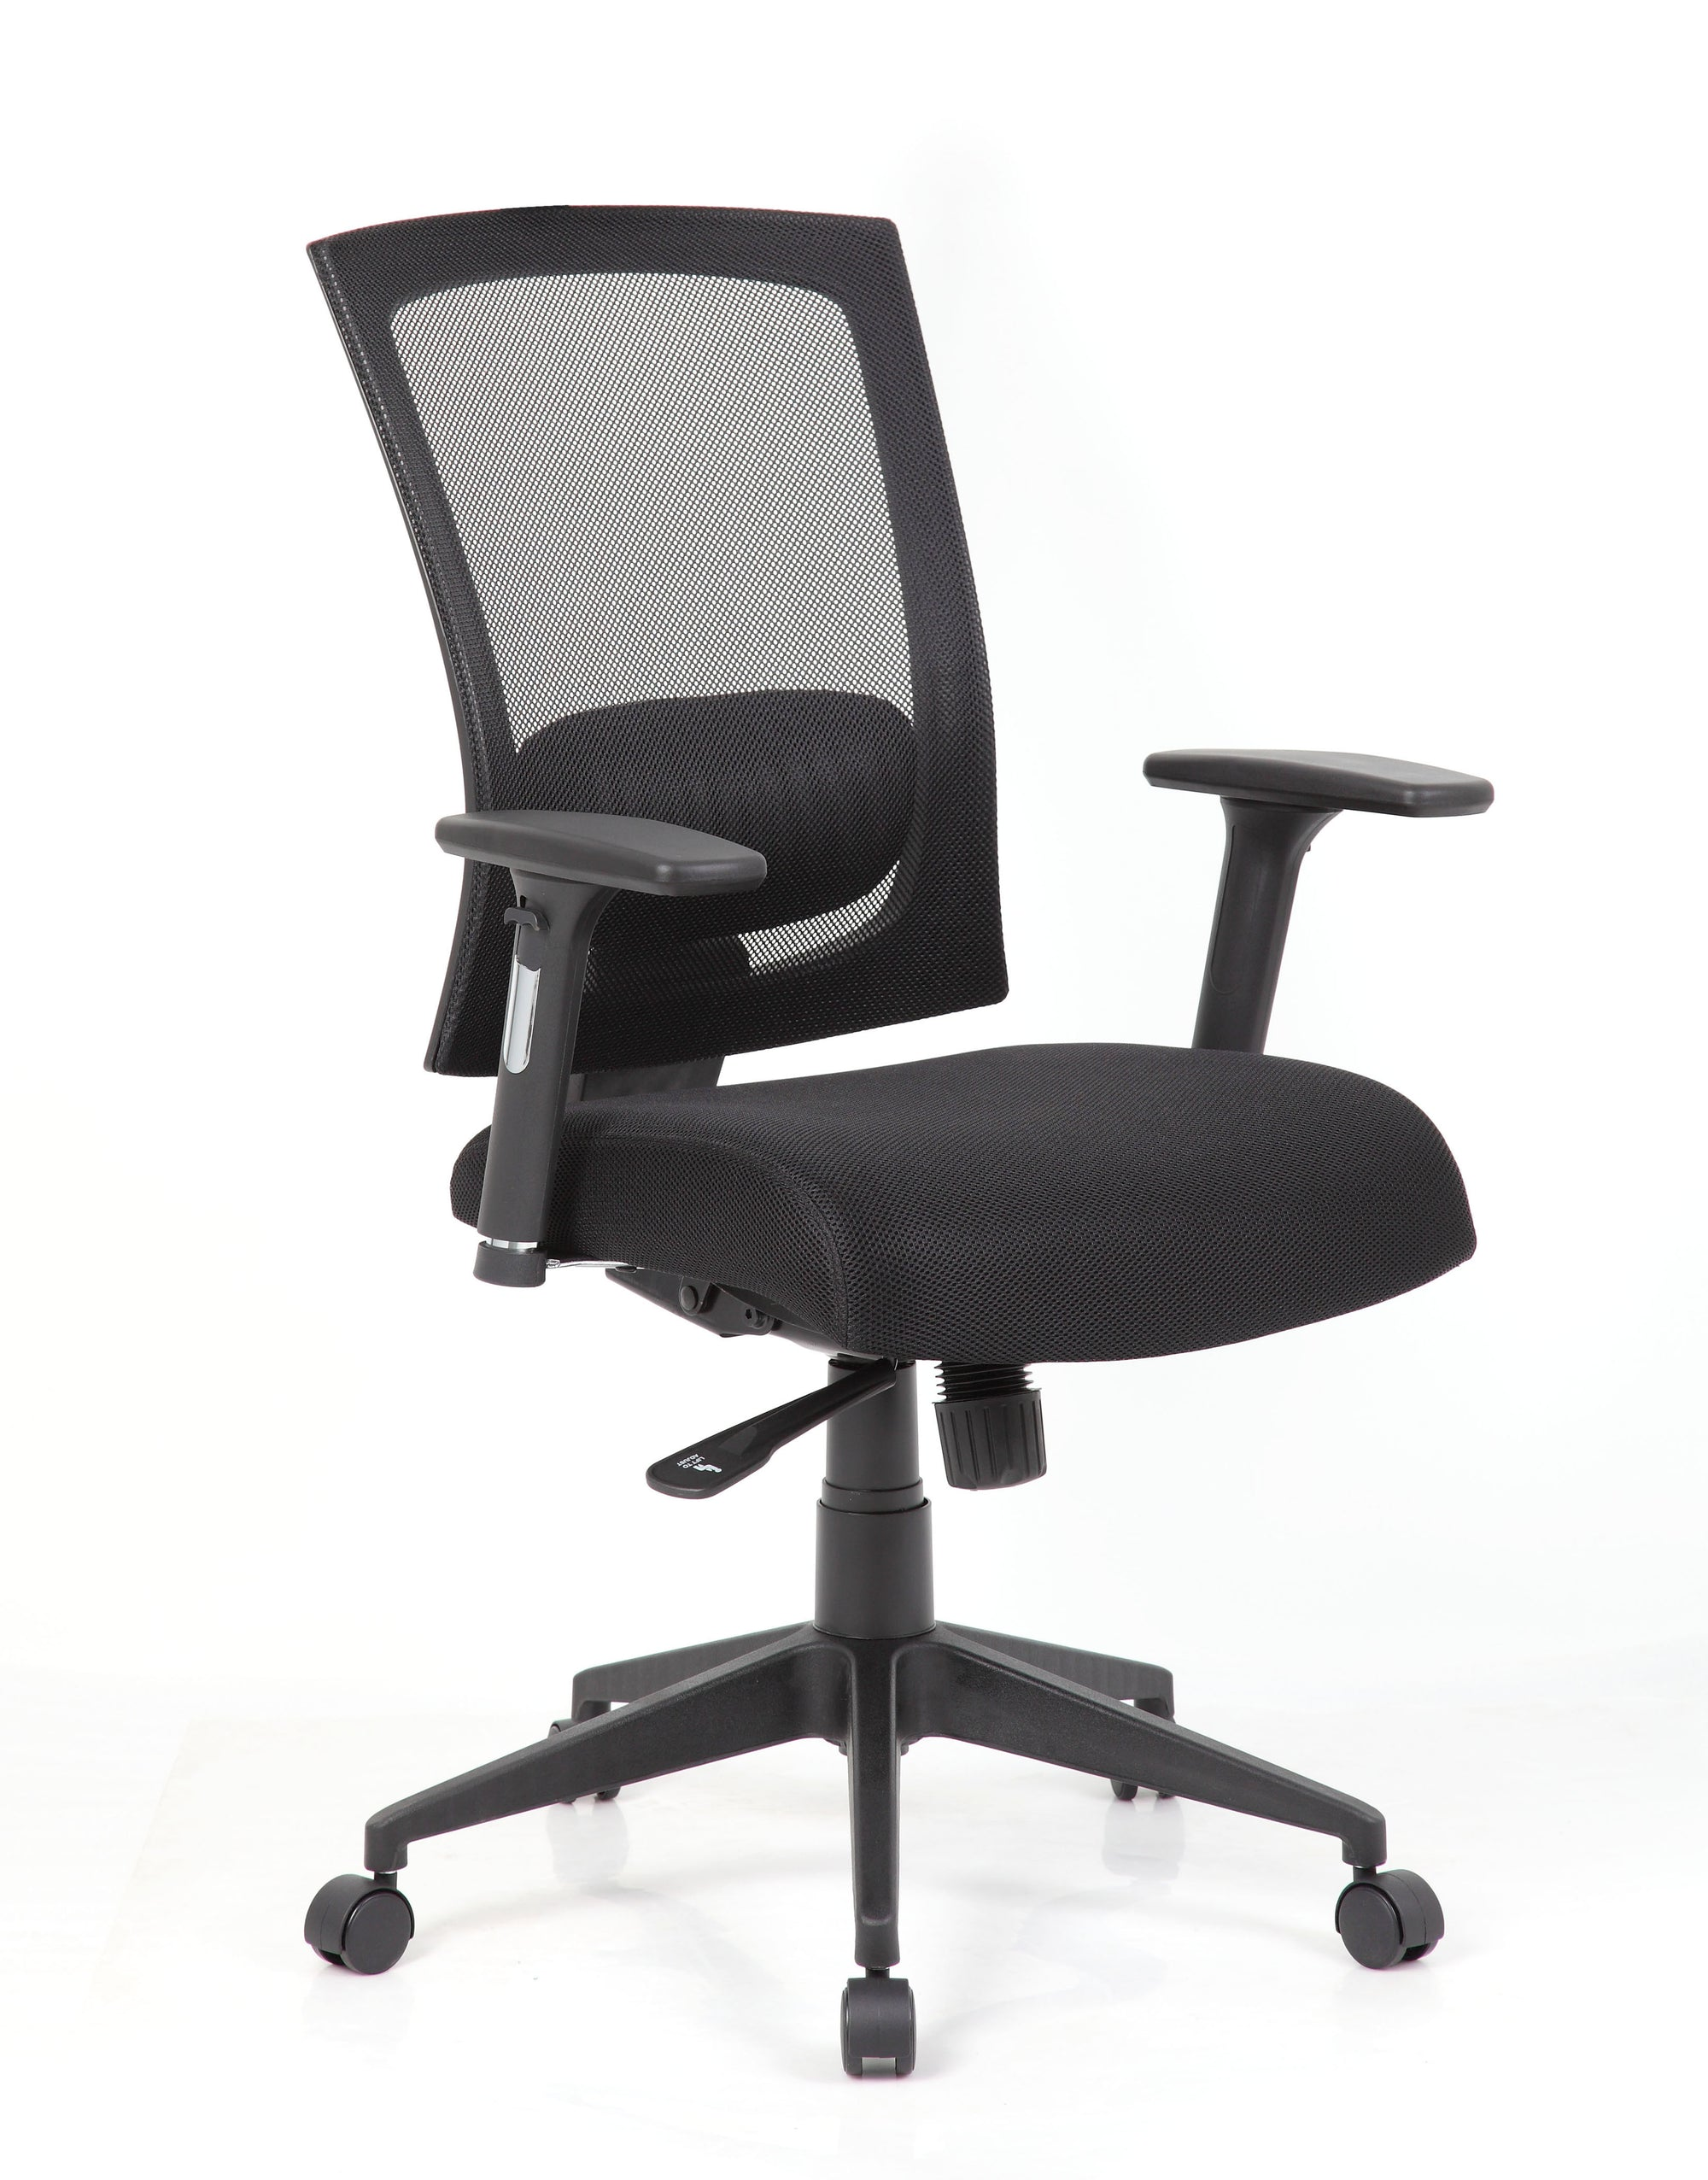 Cool Black Mesh Office Chair With Height Adjustable Armrests Home Interior And Landscaping Transignezvosmurscom